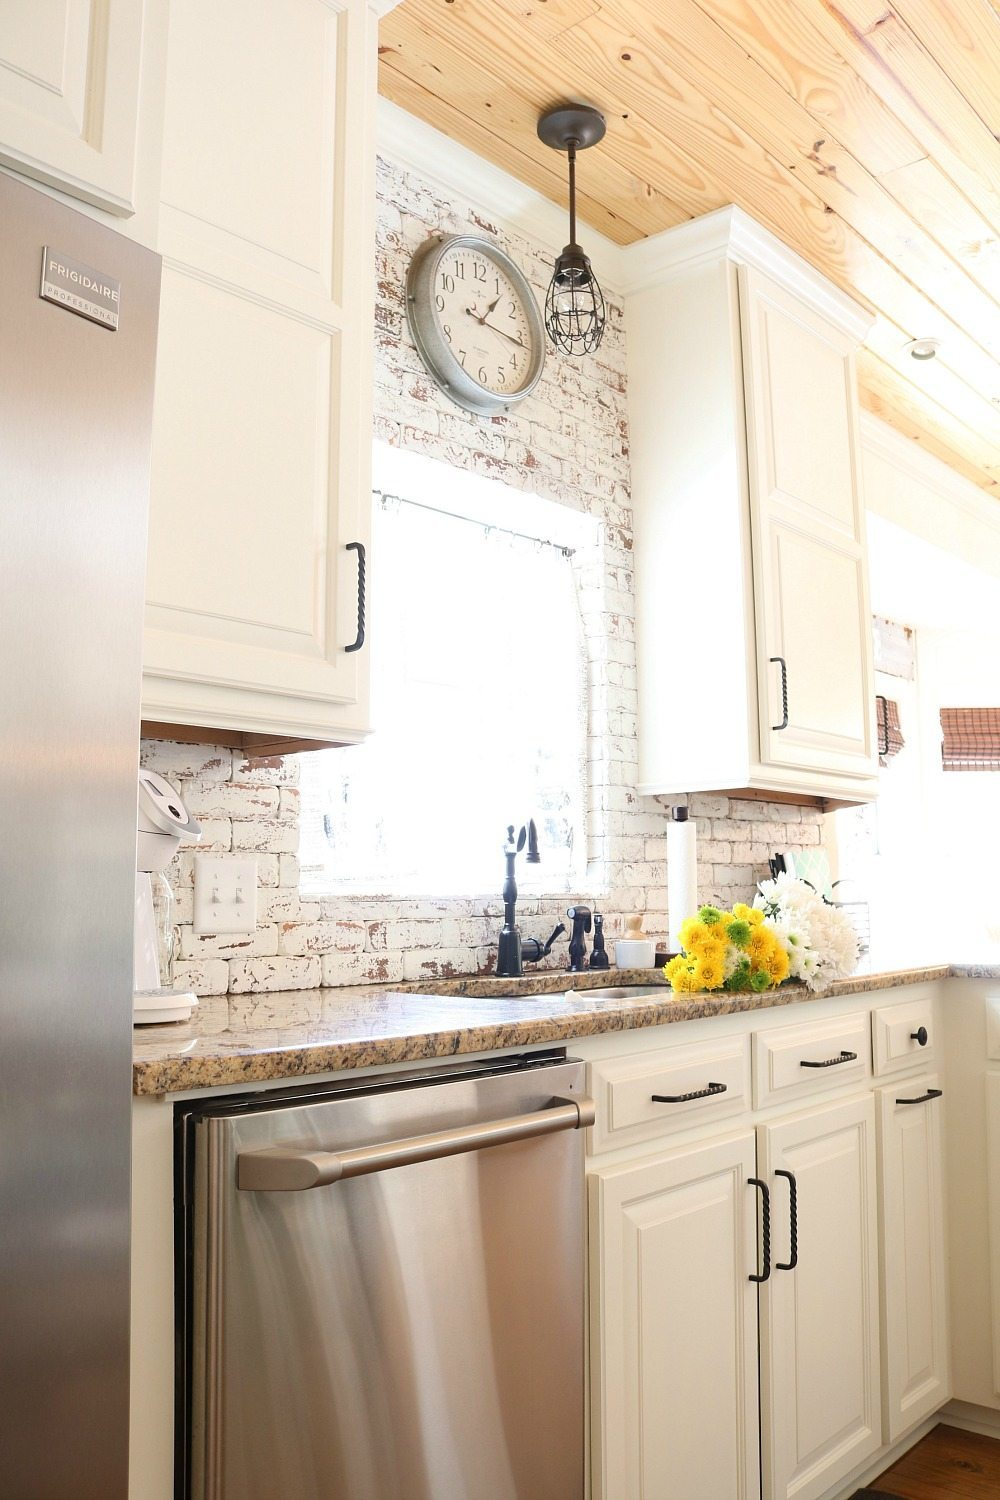 Galvanized clock on the brick wall in the kitchen at Refresh Restyle